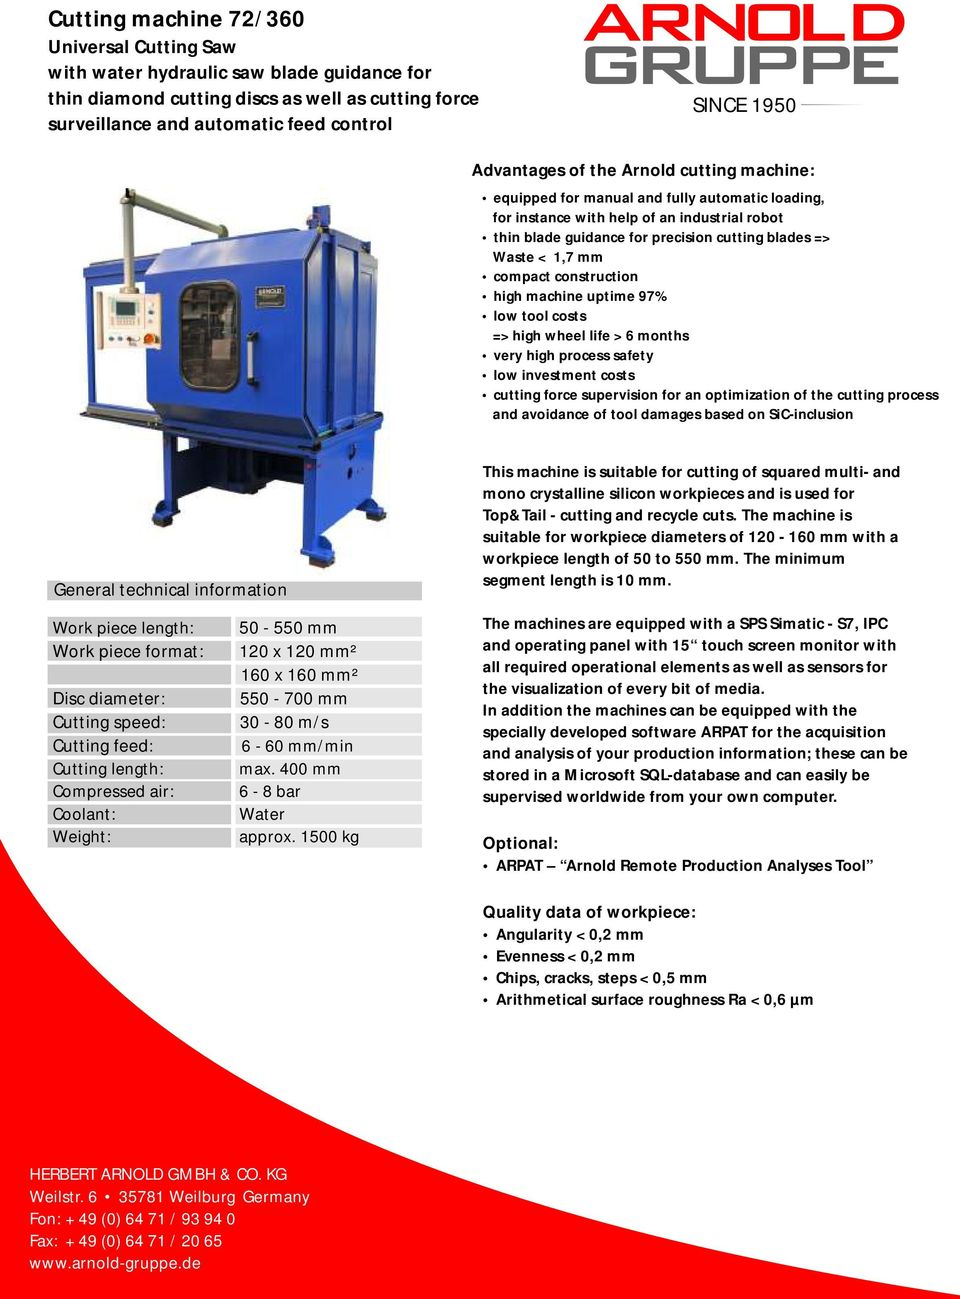 construction high machine uptime 97% low tool costs => high wheel life > 6 months very high process safety low investment costs cutting force supervision for an optimization of the cutting process